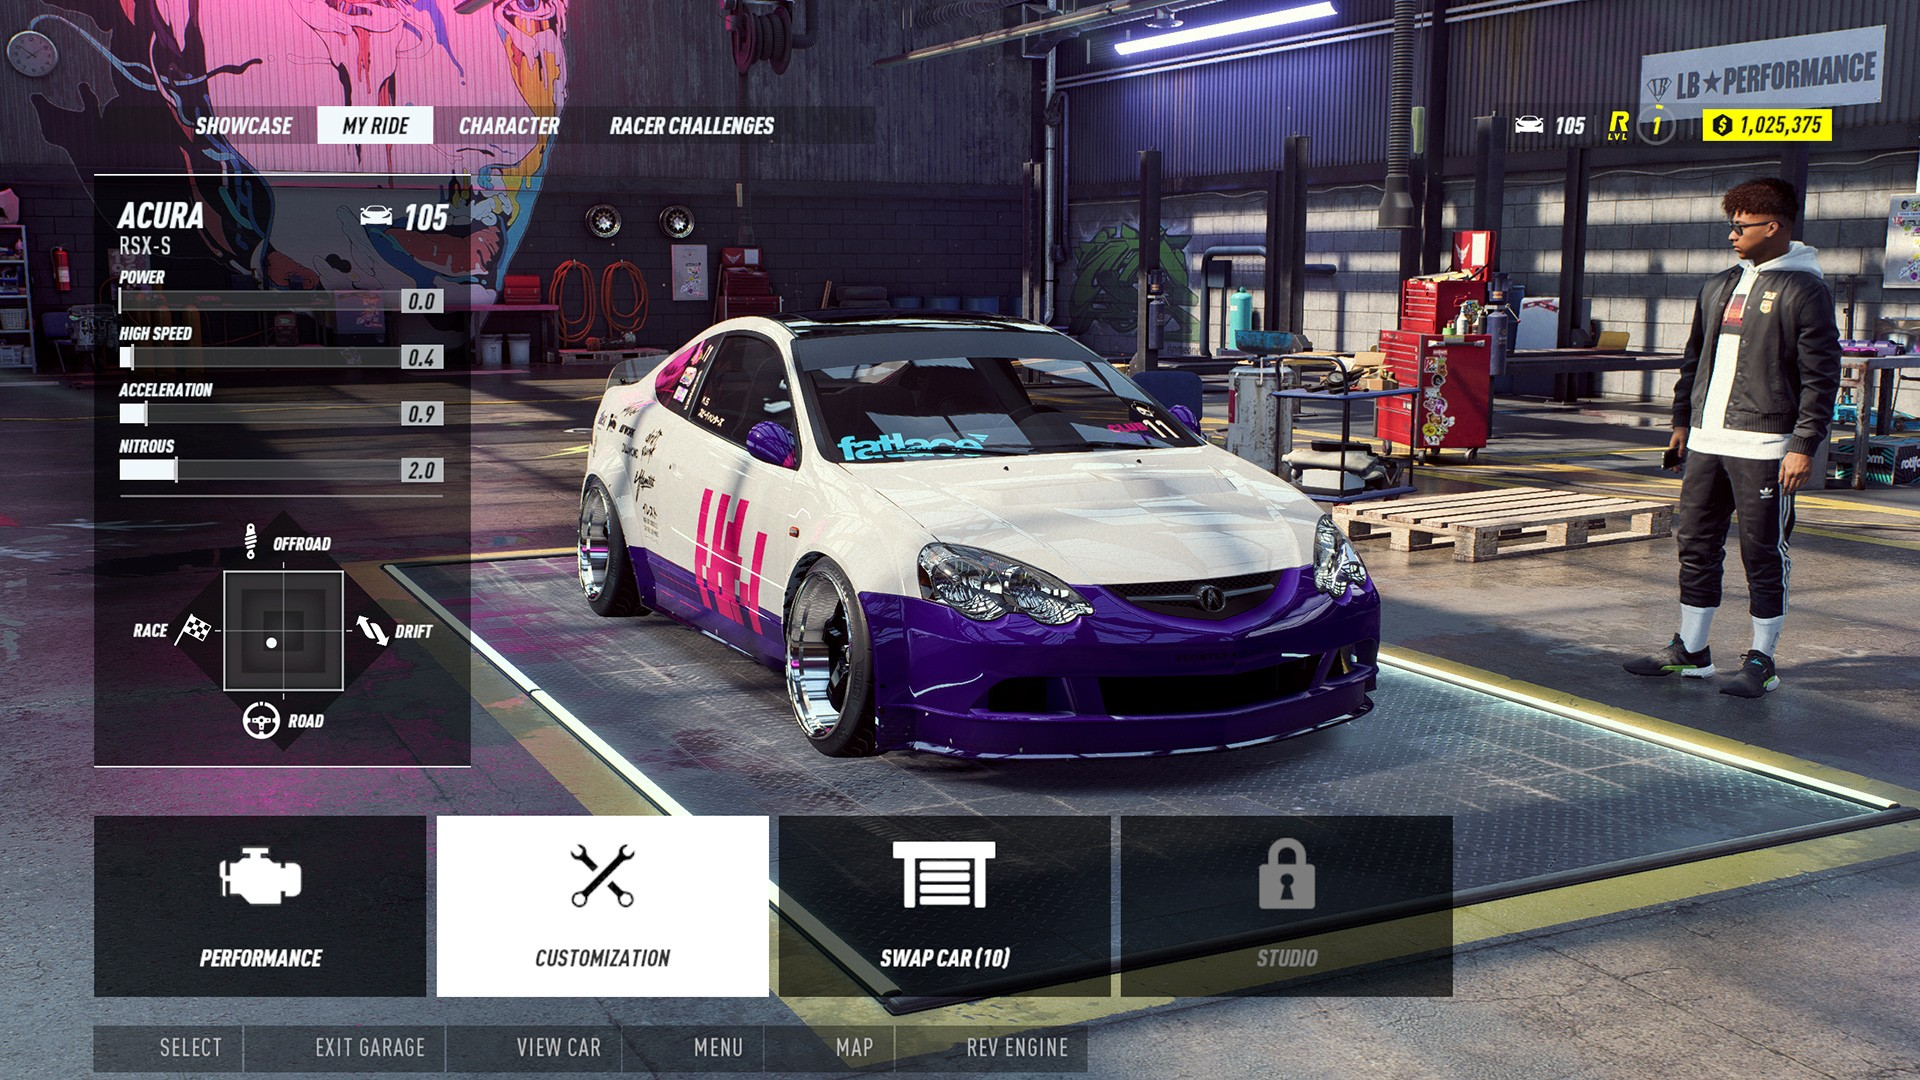 https://data1.origin.com/asset/content/dam/originx/web/app/games/need-for-speed/need-for-speed-heat/screenshots/NFS_1920x1080_Reveal_week_4_carcustomization_02_NoLogo.jpg/ab0a5e10-83cf-4144-bd63-8db027030f08/original.jpg